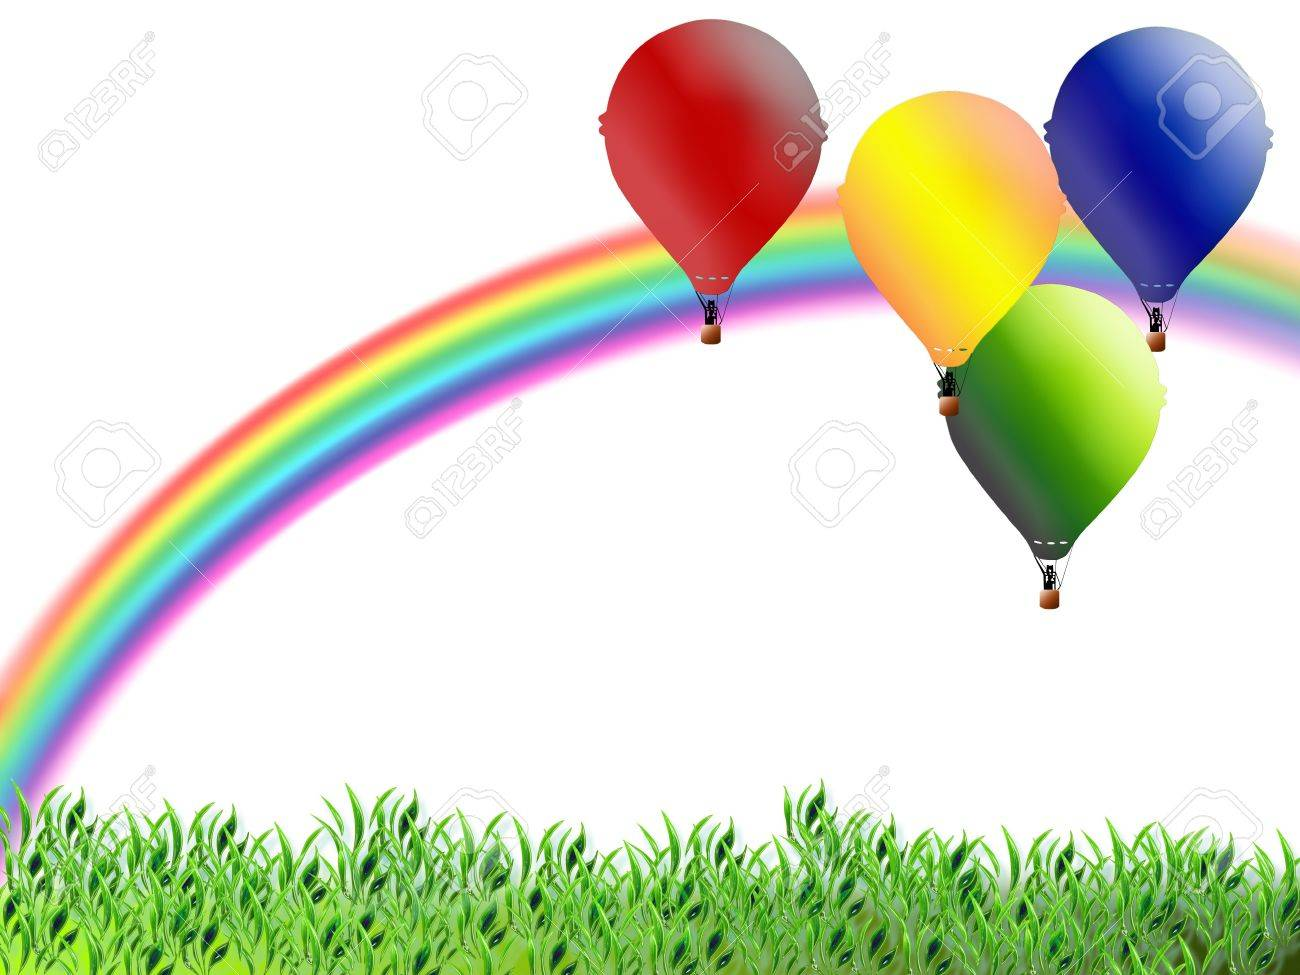 Illustration for children with balloons and rainbow Stock Illustration - 8000040